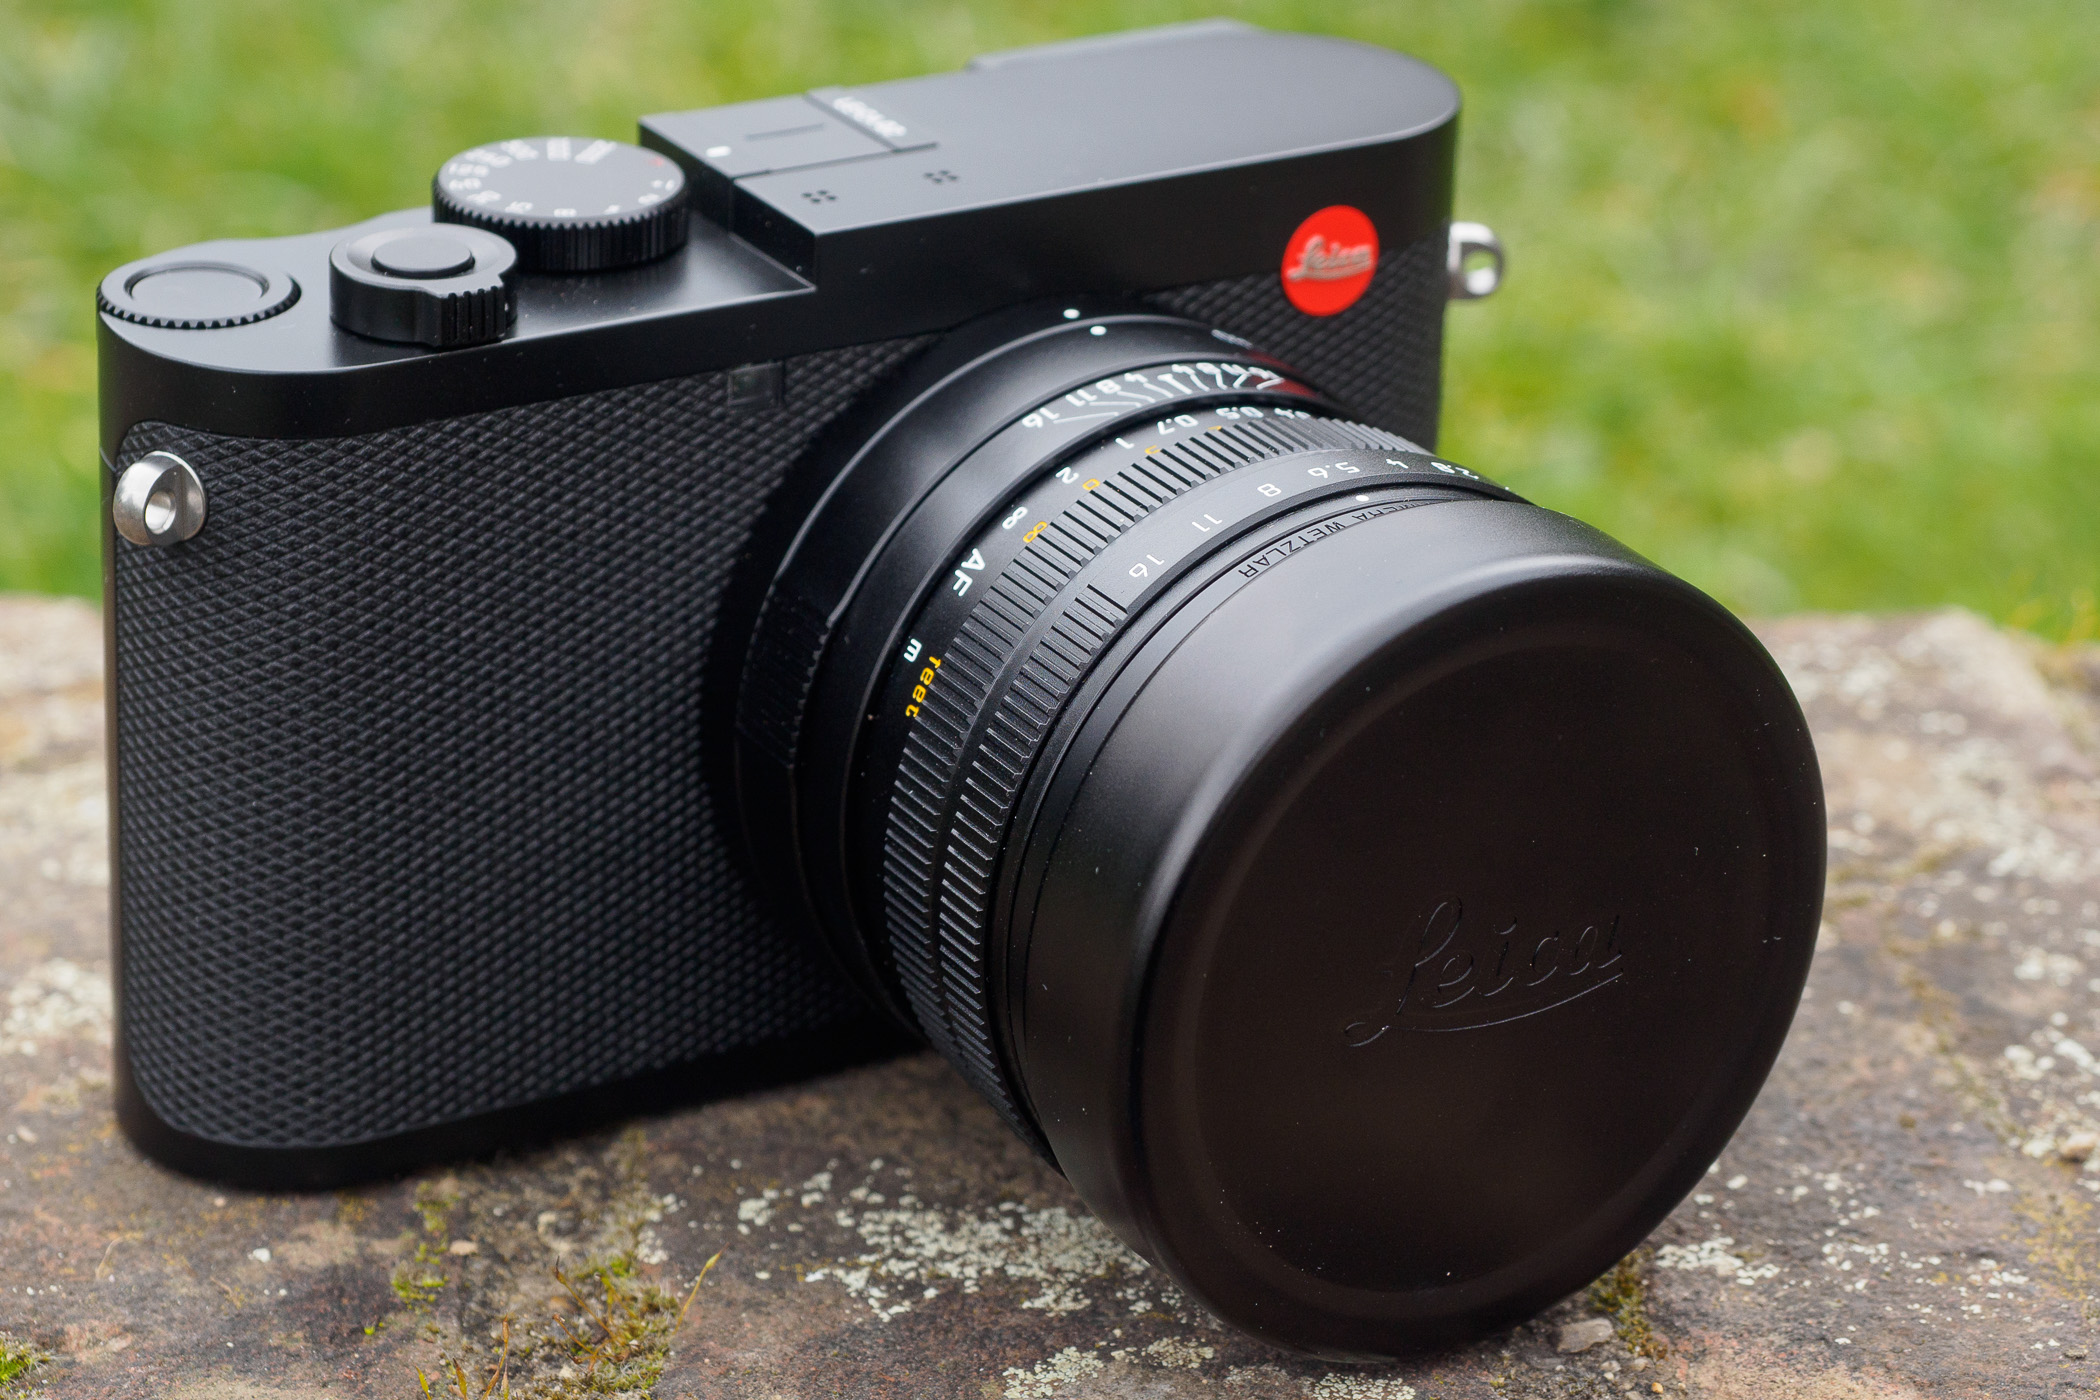 Leica Q2 review: hands-on first look - Amateur Photographer